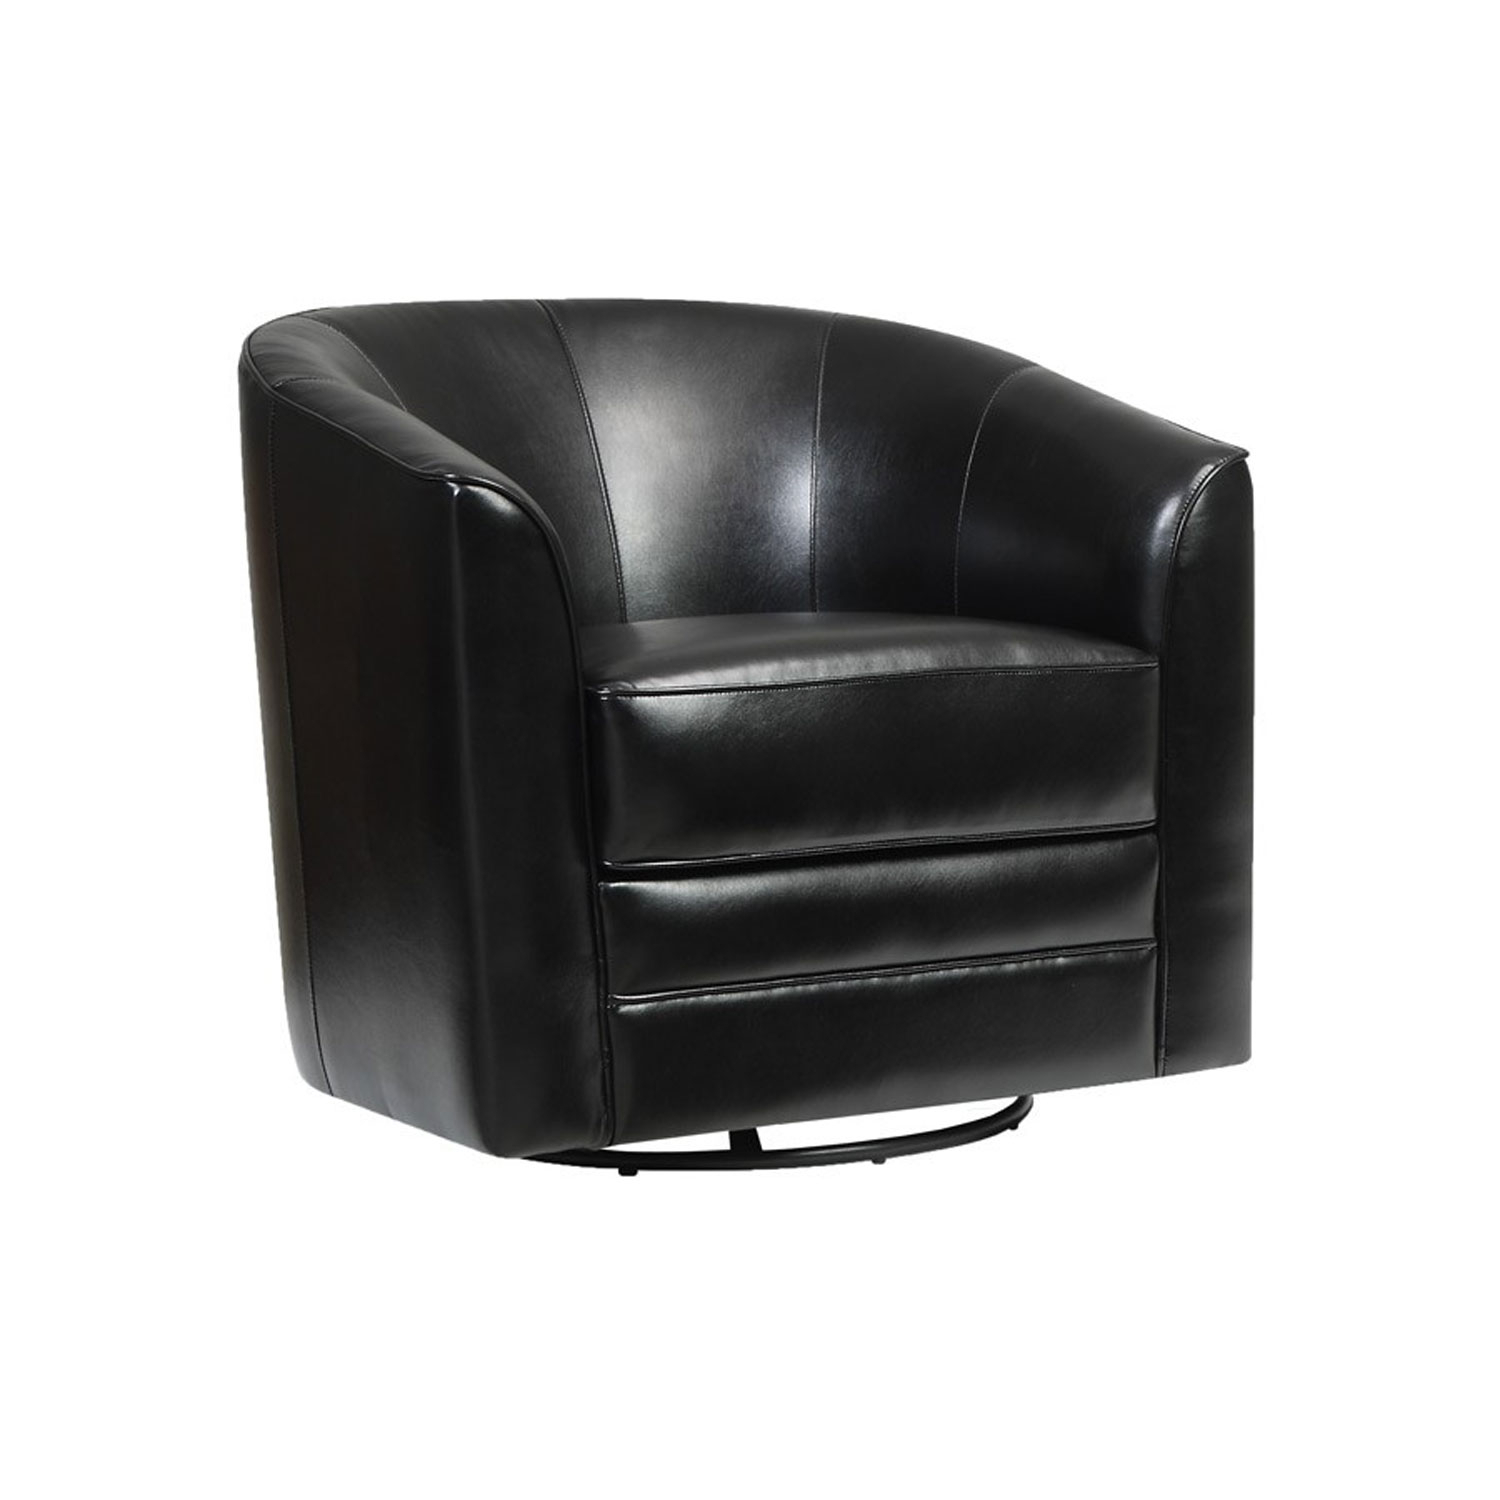 Emerald Home Furnishings Milo Swivel Chair Black U5029C 04 16 | Bellacor For Swivel Tobacco Leather Chairs (Image 5 of 20)